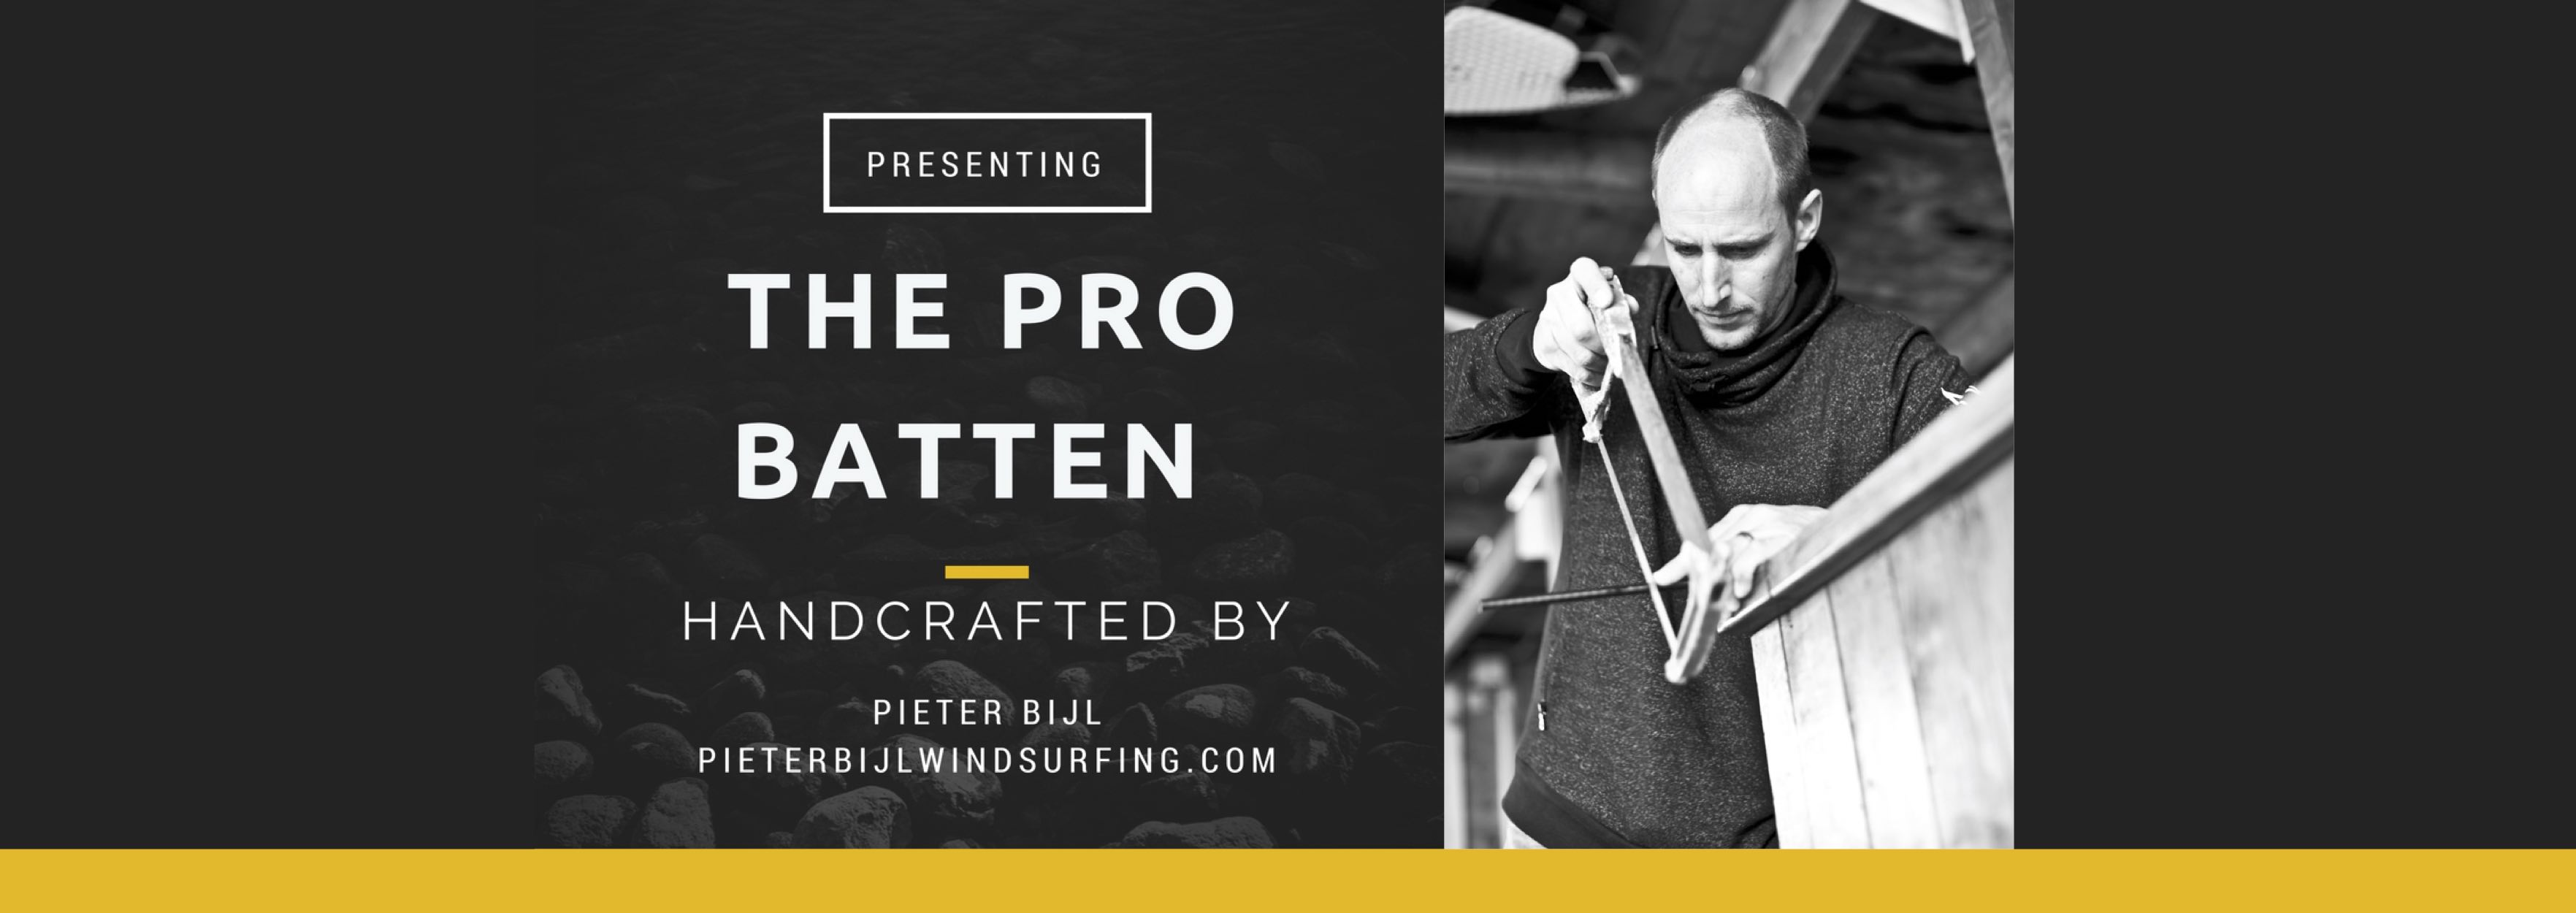 The-Pro-Batten-copy1